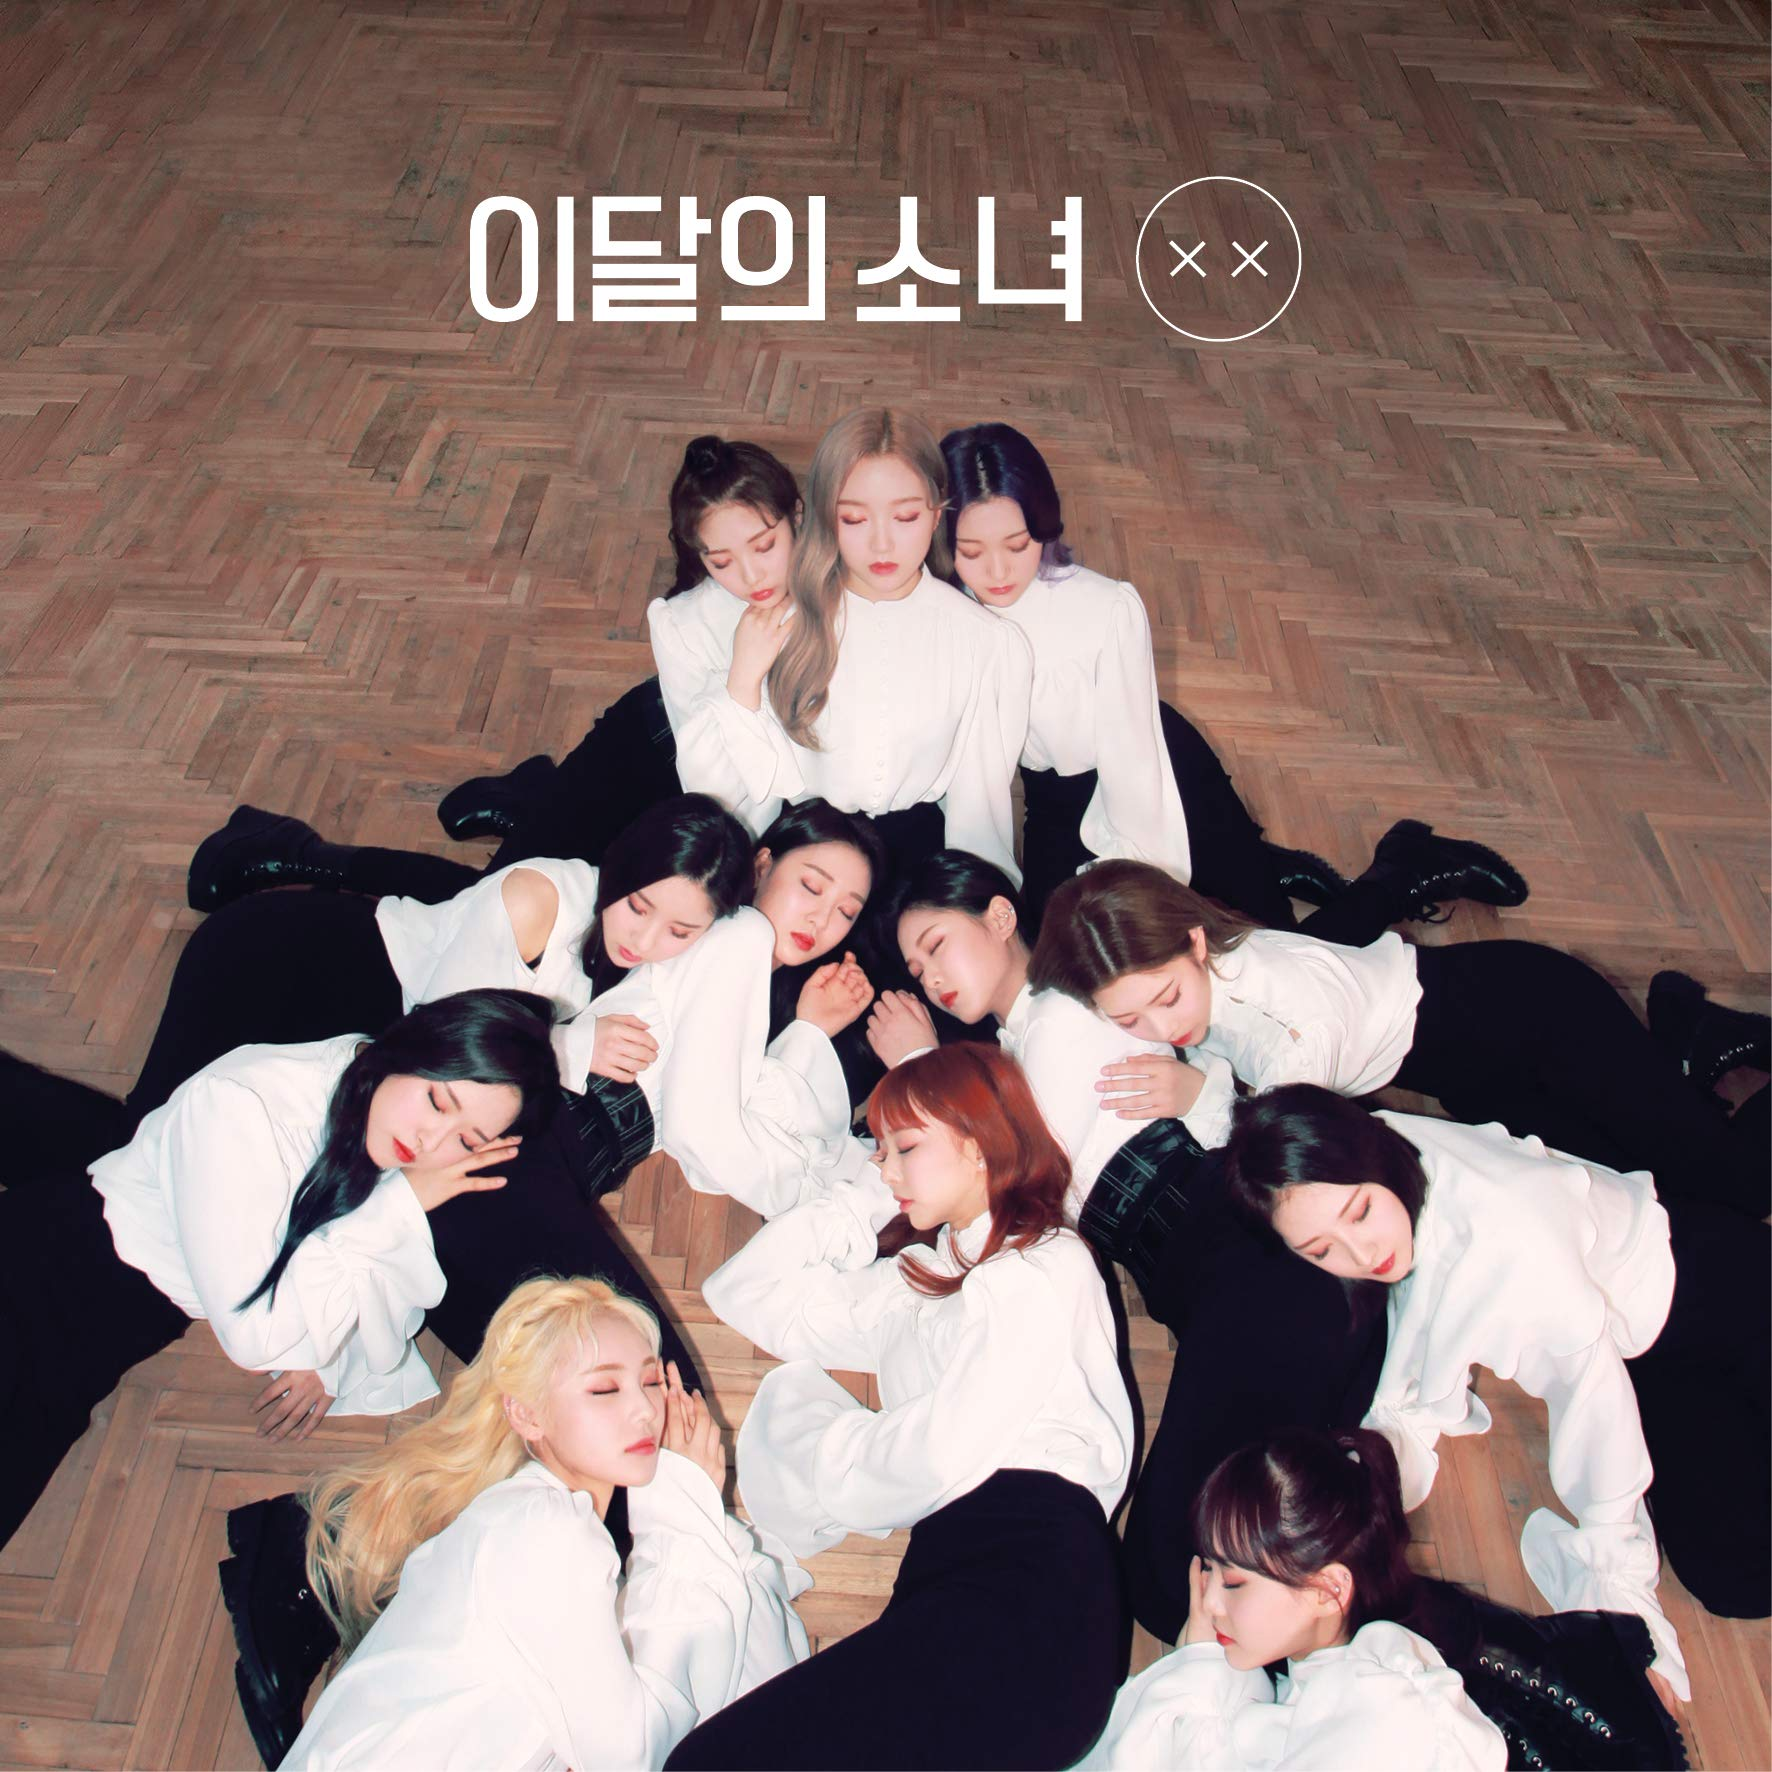 Monthly Girl LOONA - X X (Debut Mini Repackage) [Limited B ver.] CD+Booklet+1Photocard+Folded Poster+Double Side Extra Photocards Set by BlockBerryCreative (Image #1)